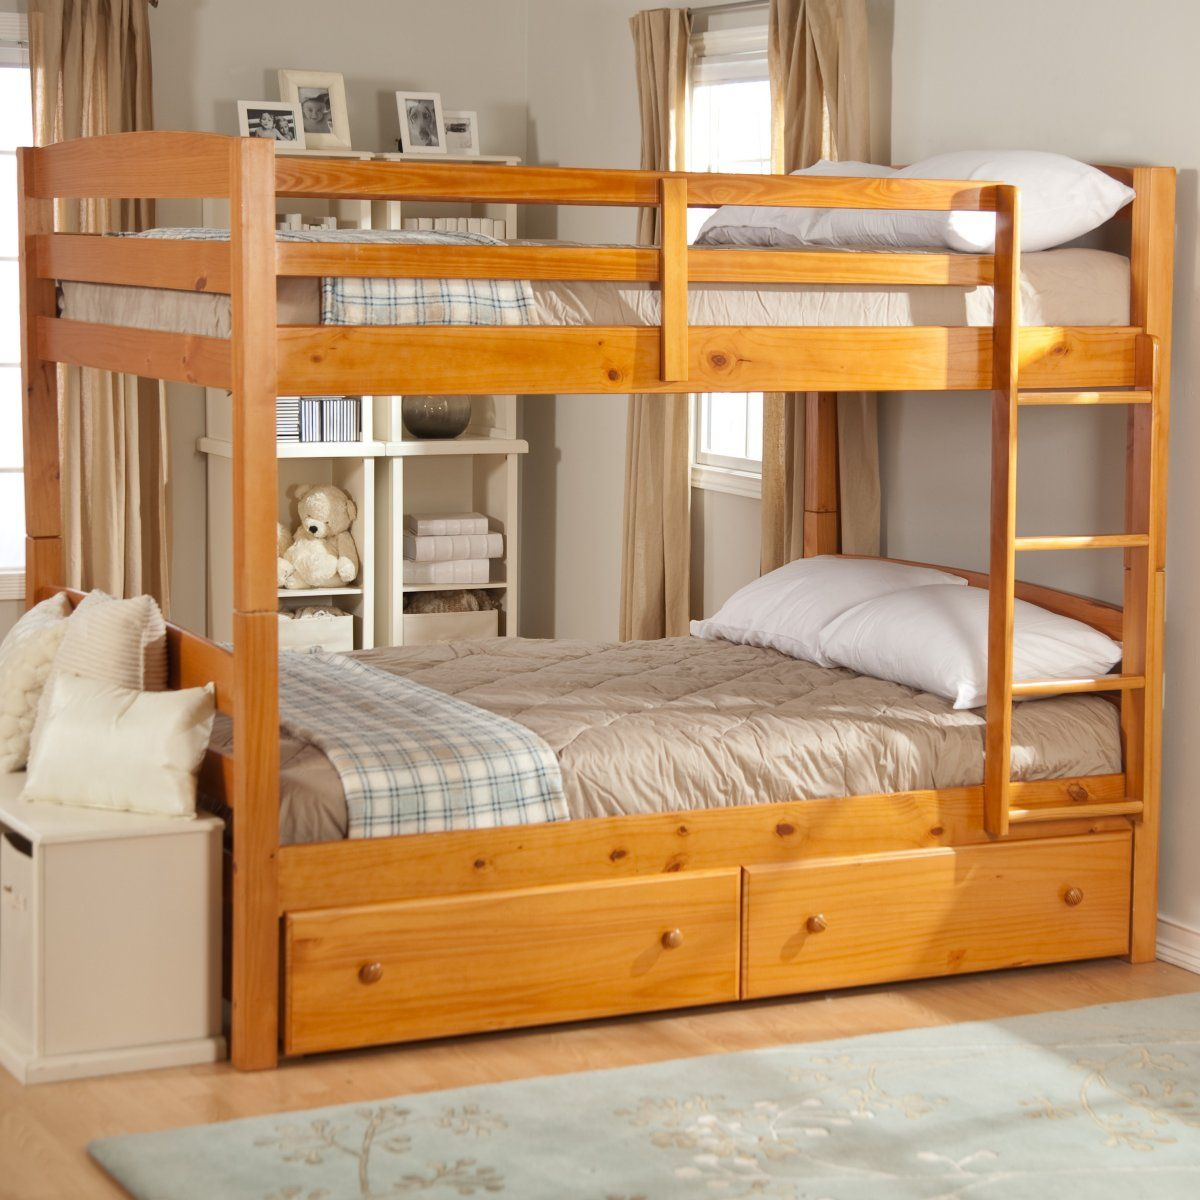 Full Full Bunk Bed Trundle Or Drawers Optional Can Separate Into 2